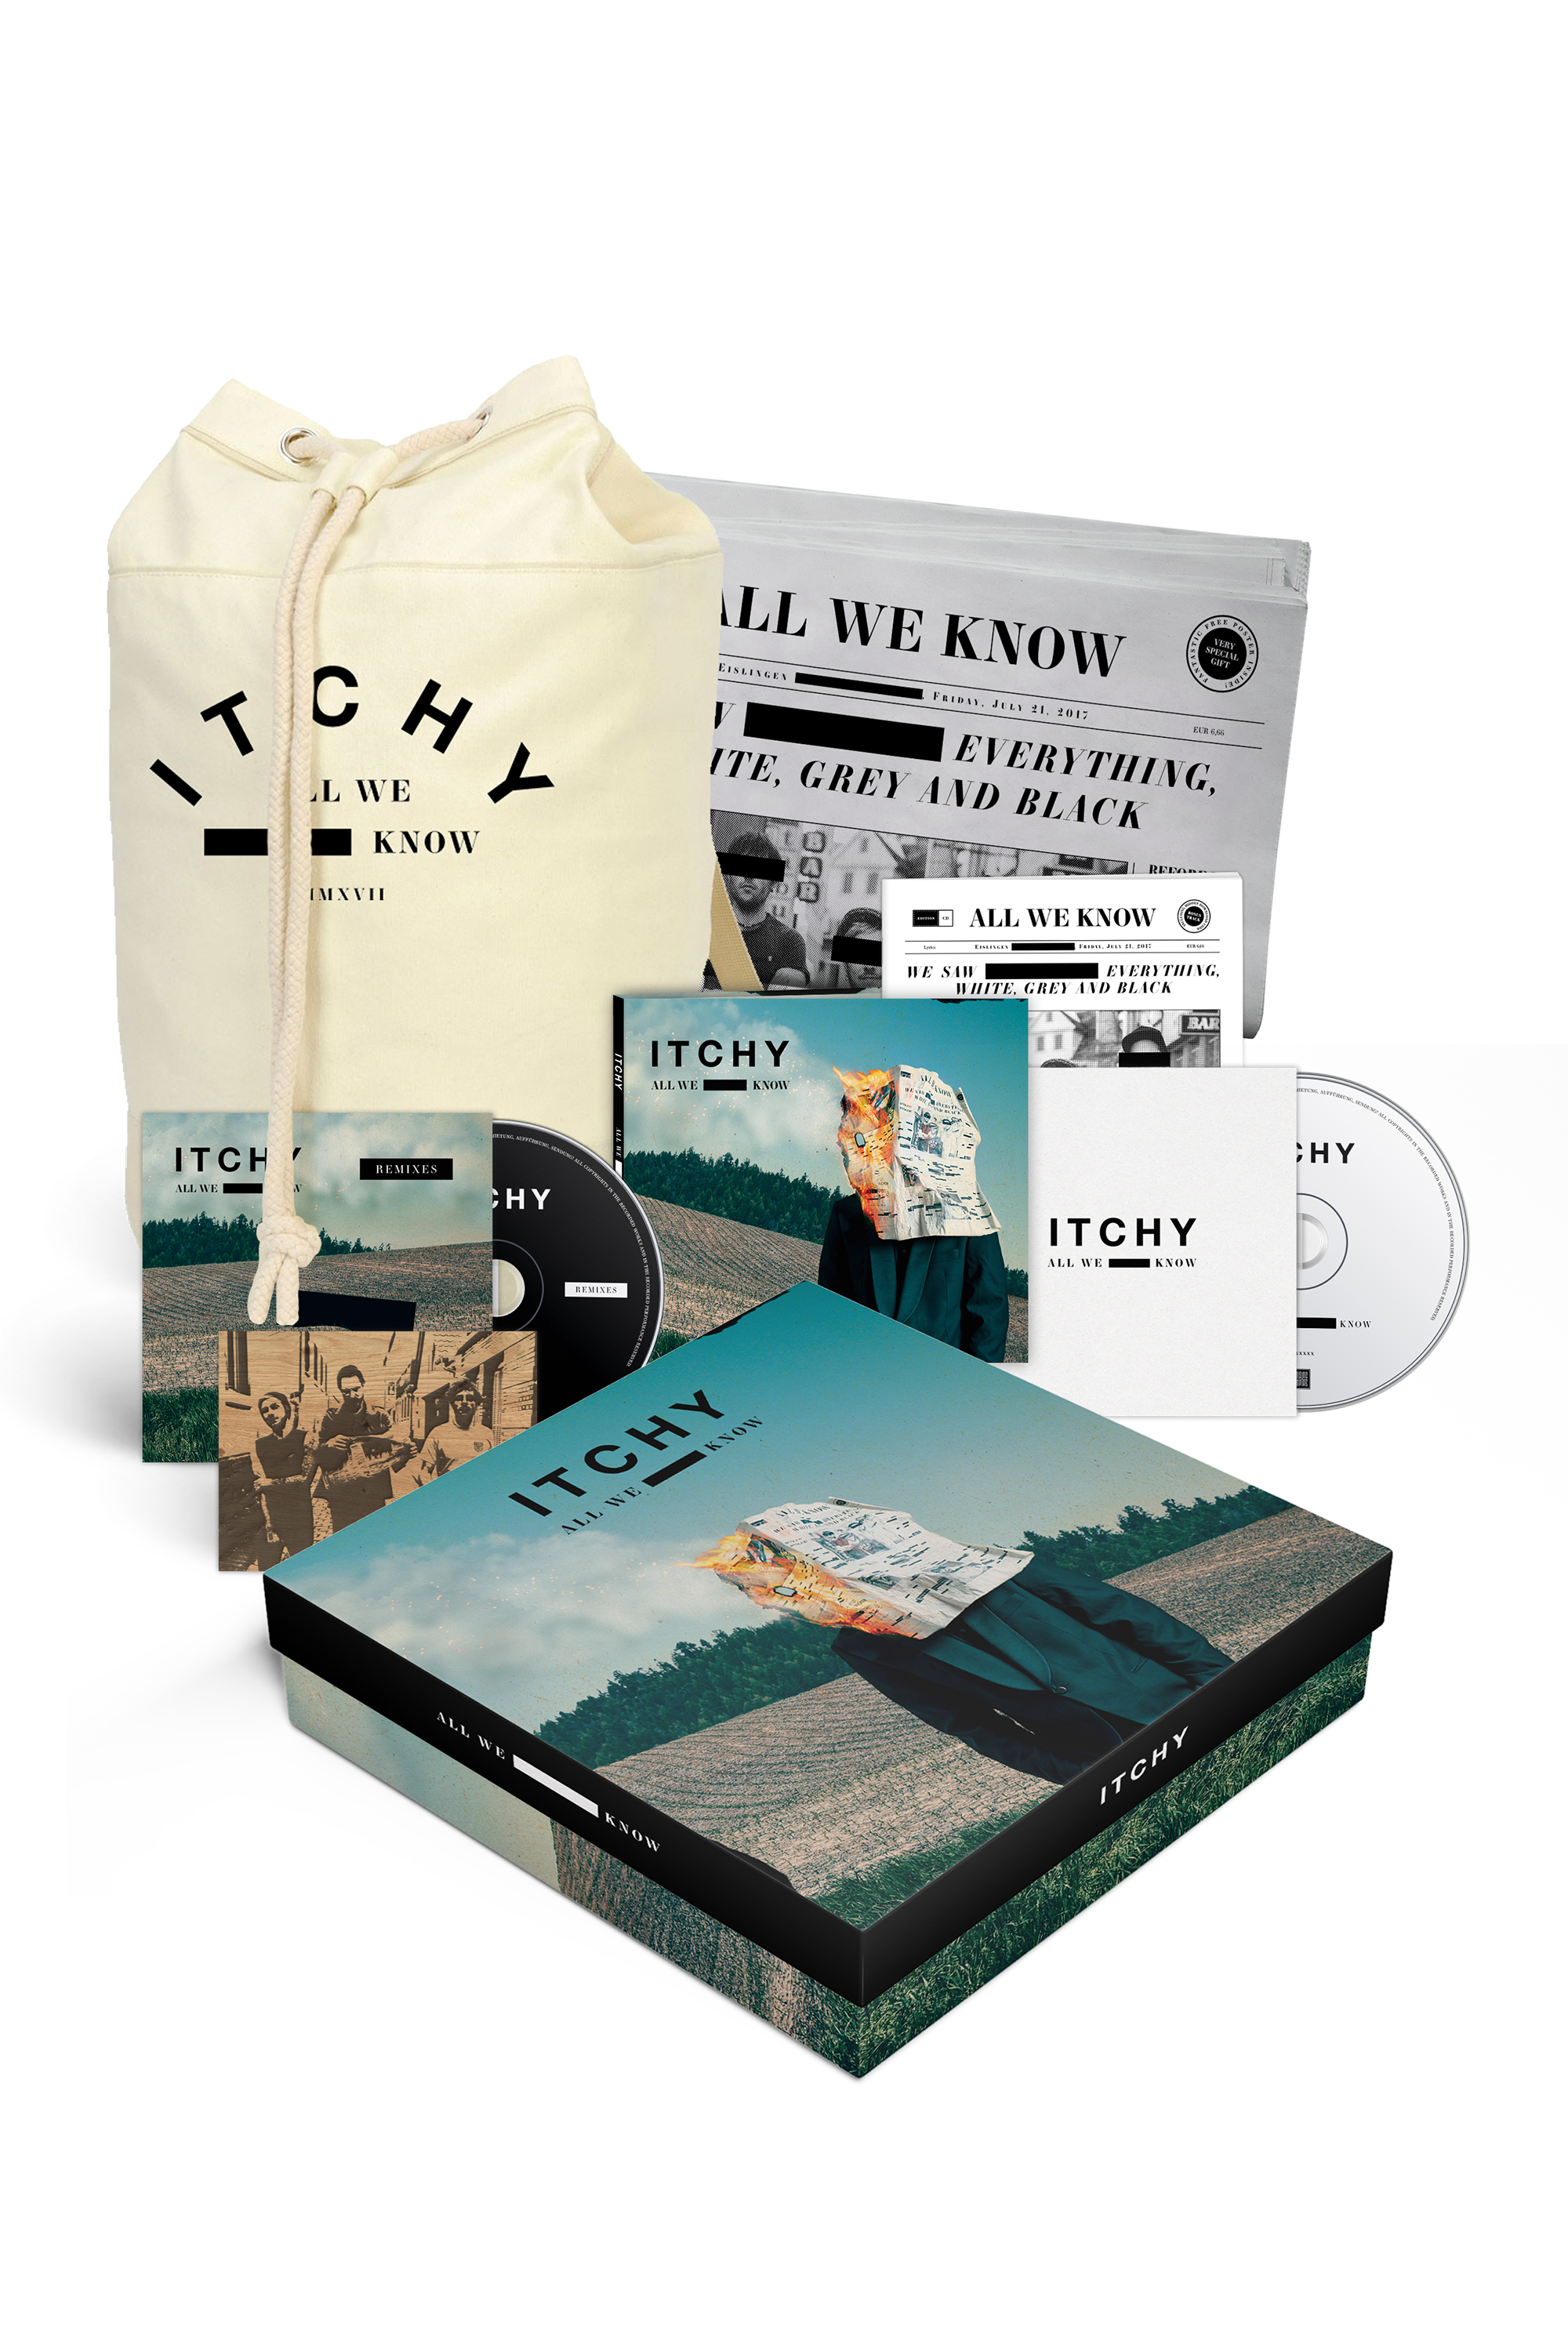 All We Know (Ltd. CD Deluxe Box)